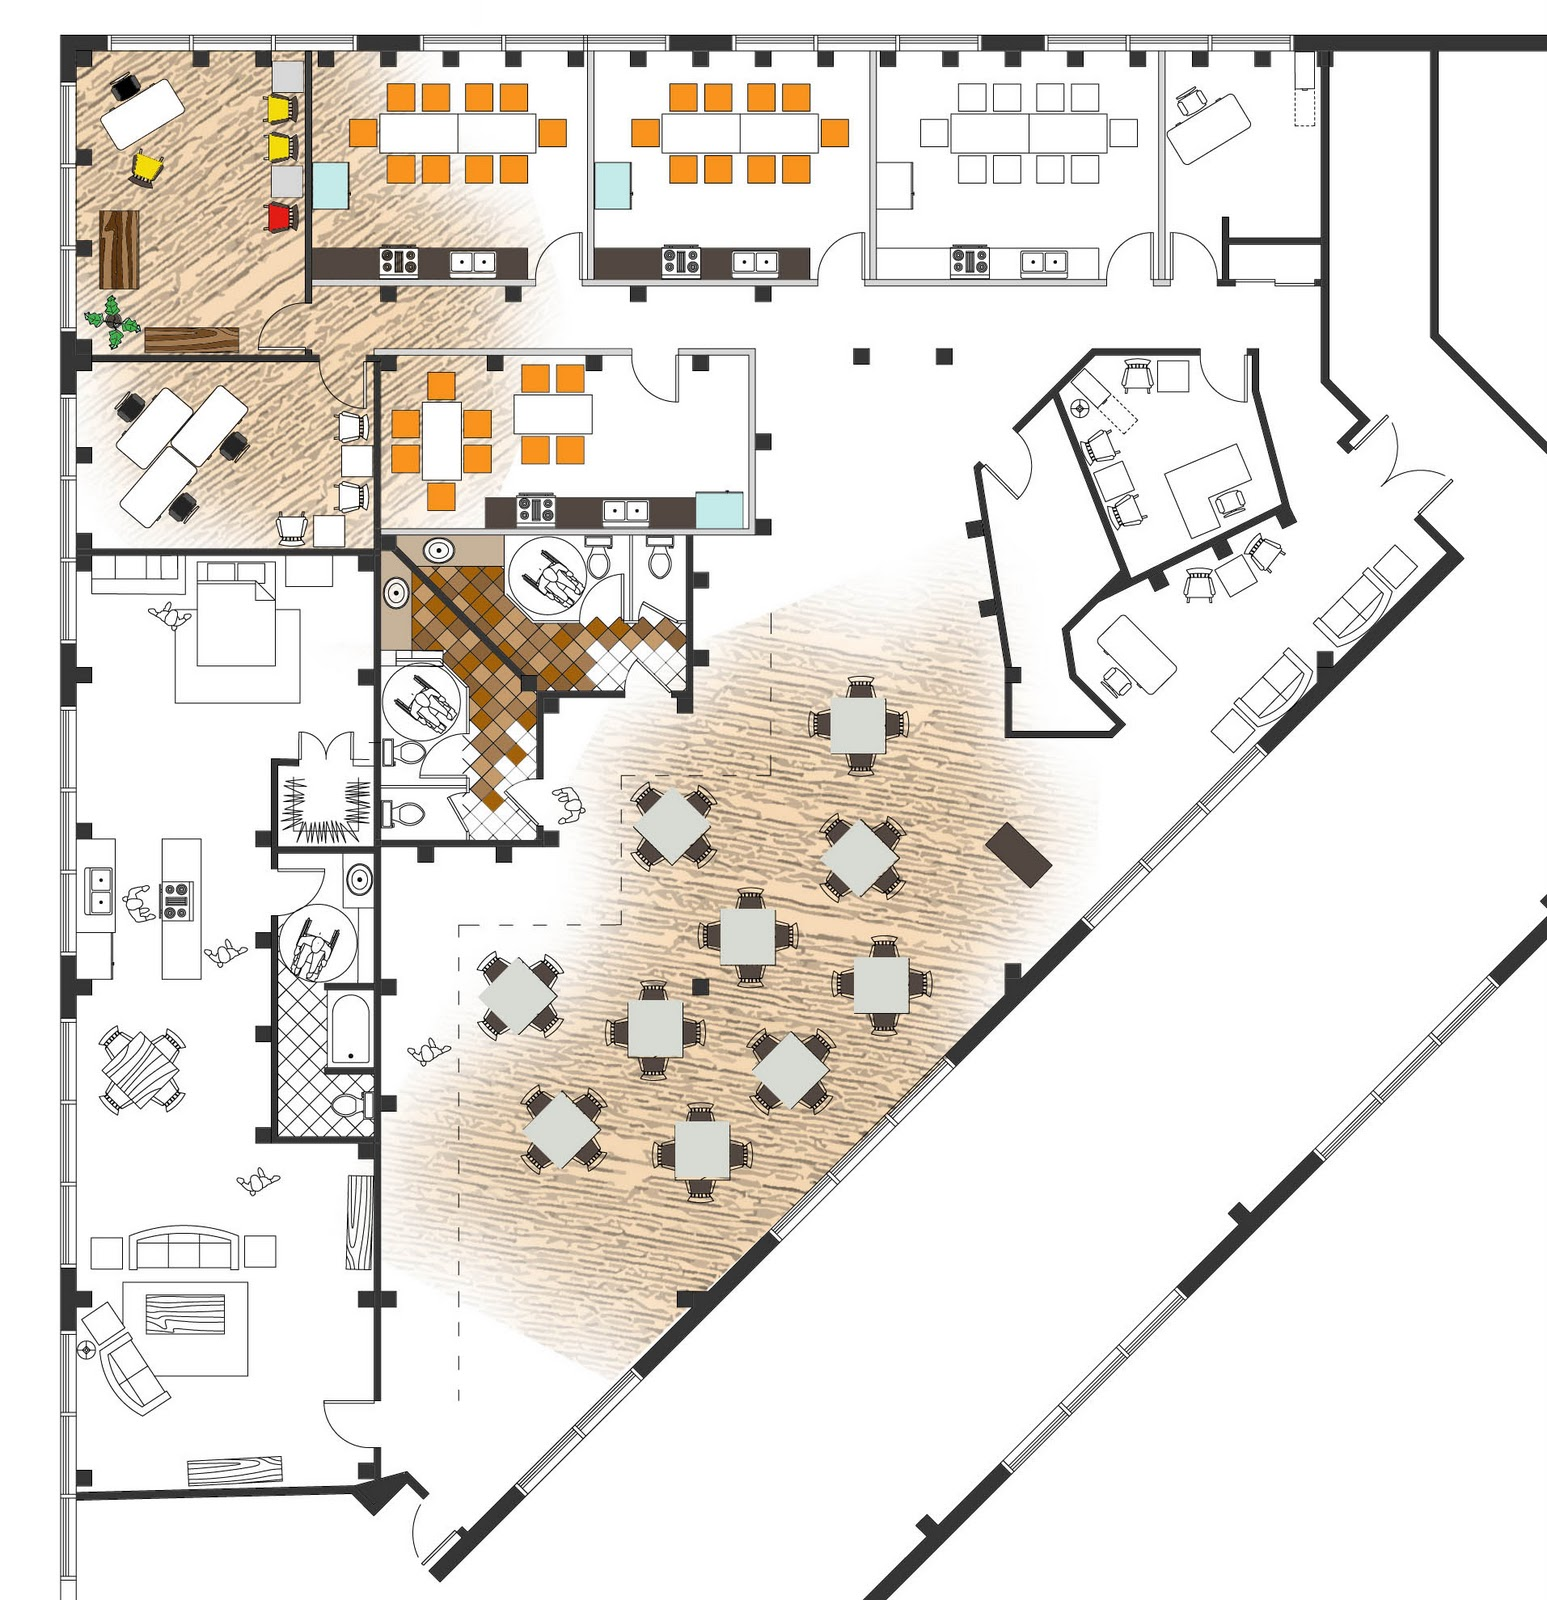 The design spot interiors design for the culinary arts - College of design construction and planning ...